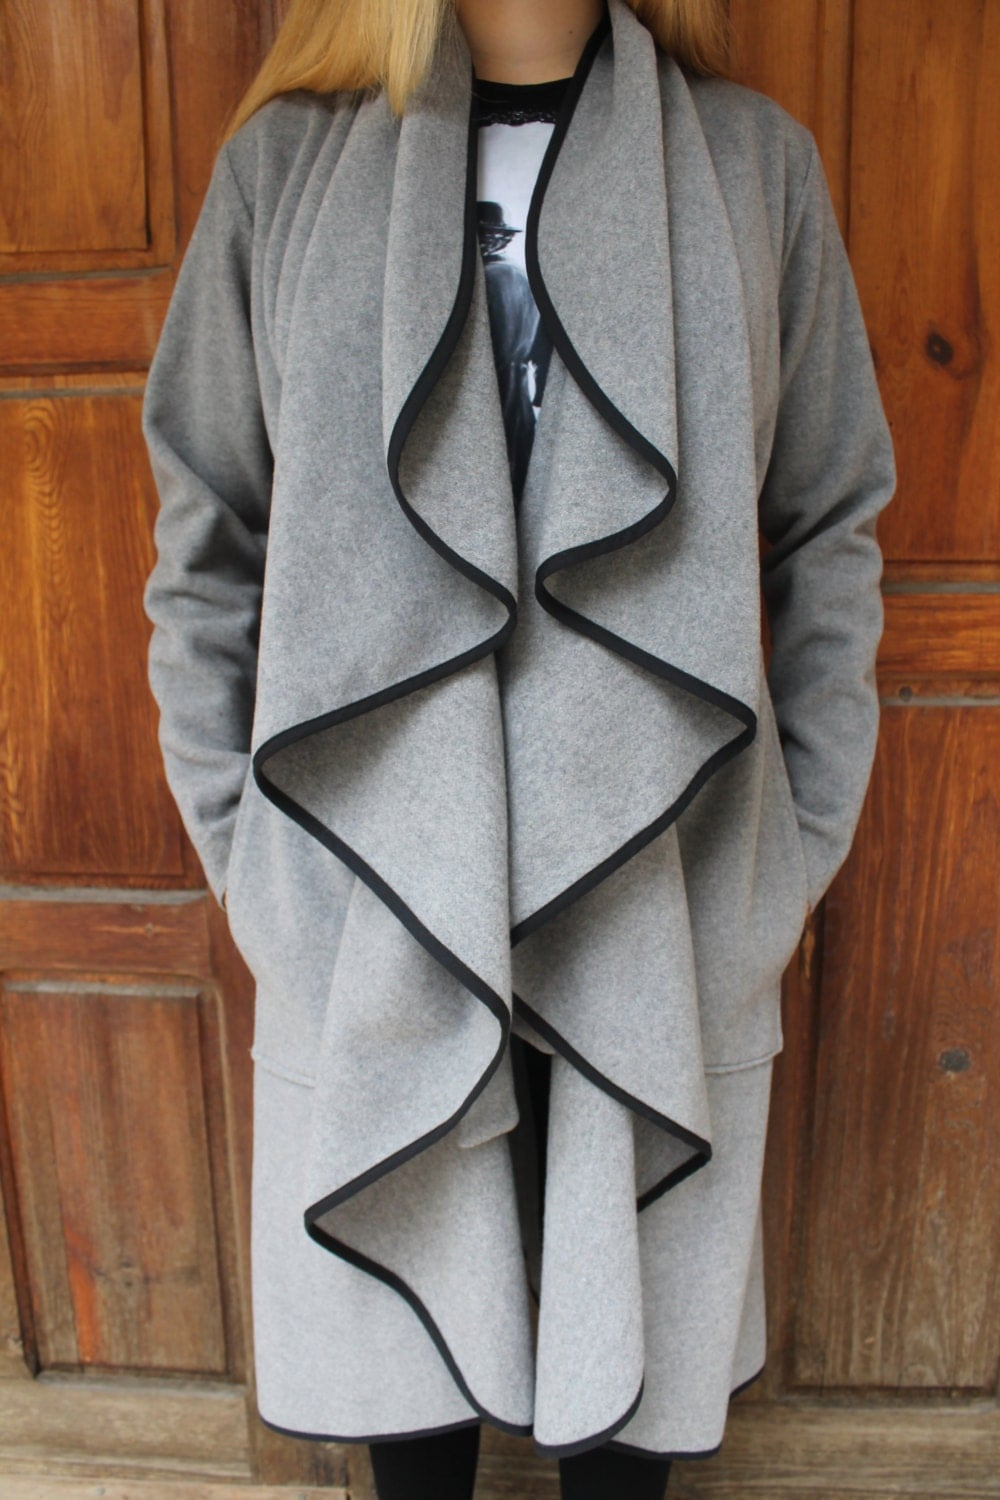 Grey Woollen Long Coat  Gray Belted Coat  Wool Coat  Wavy Front Coat  Frilly Long Coat  Warm Elegant and Fashionable by Silvia Monetti